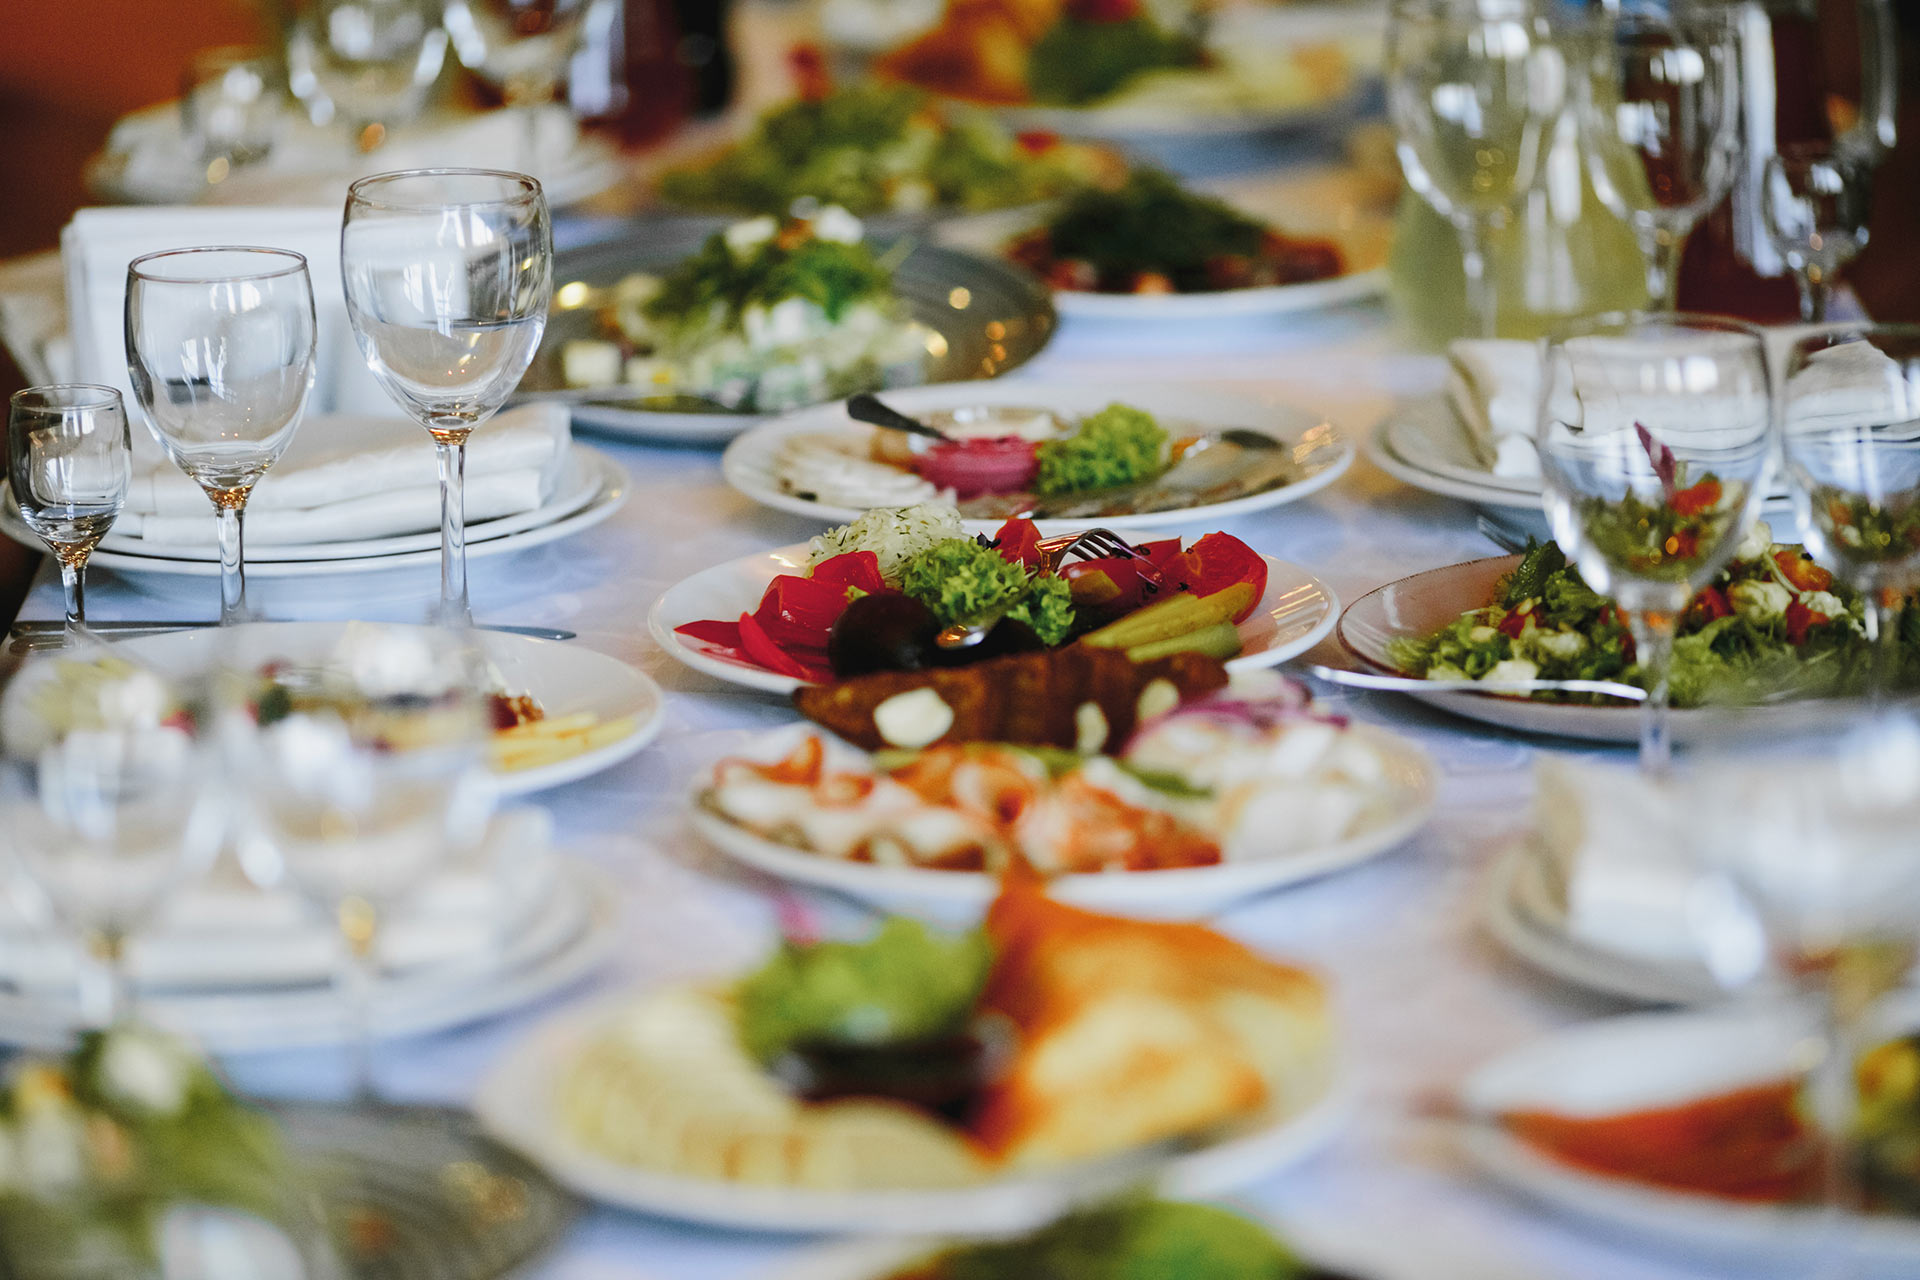 plates-with-variety-food-celebration-table